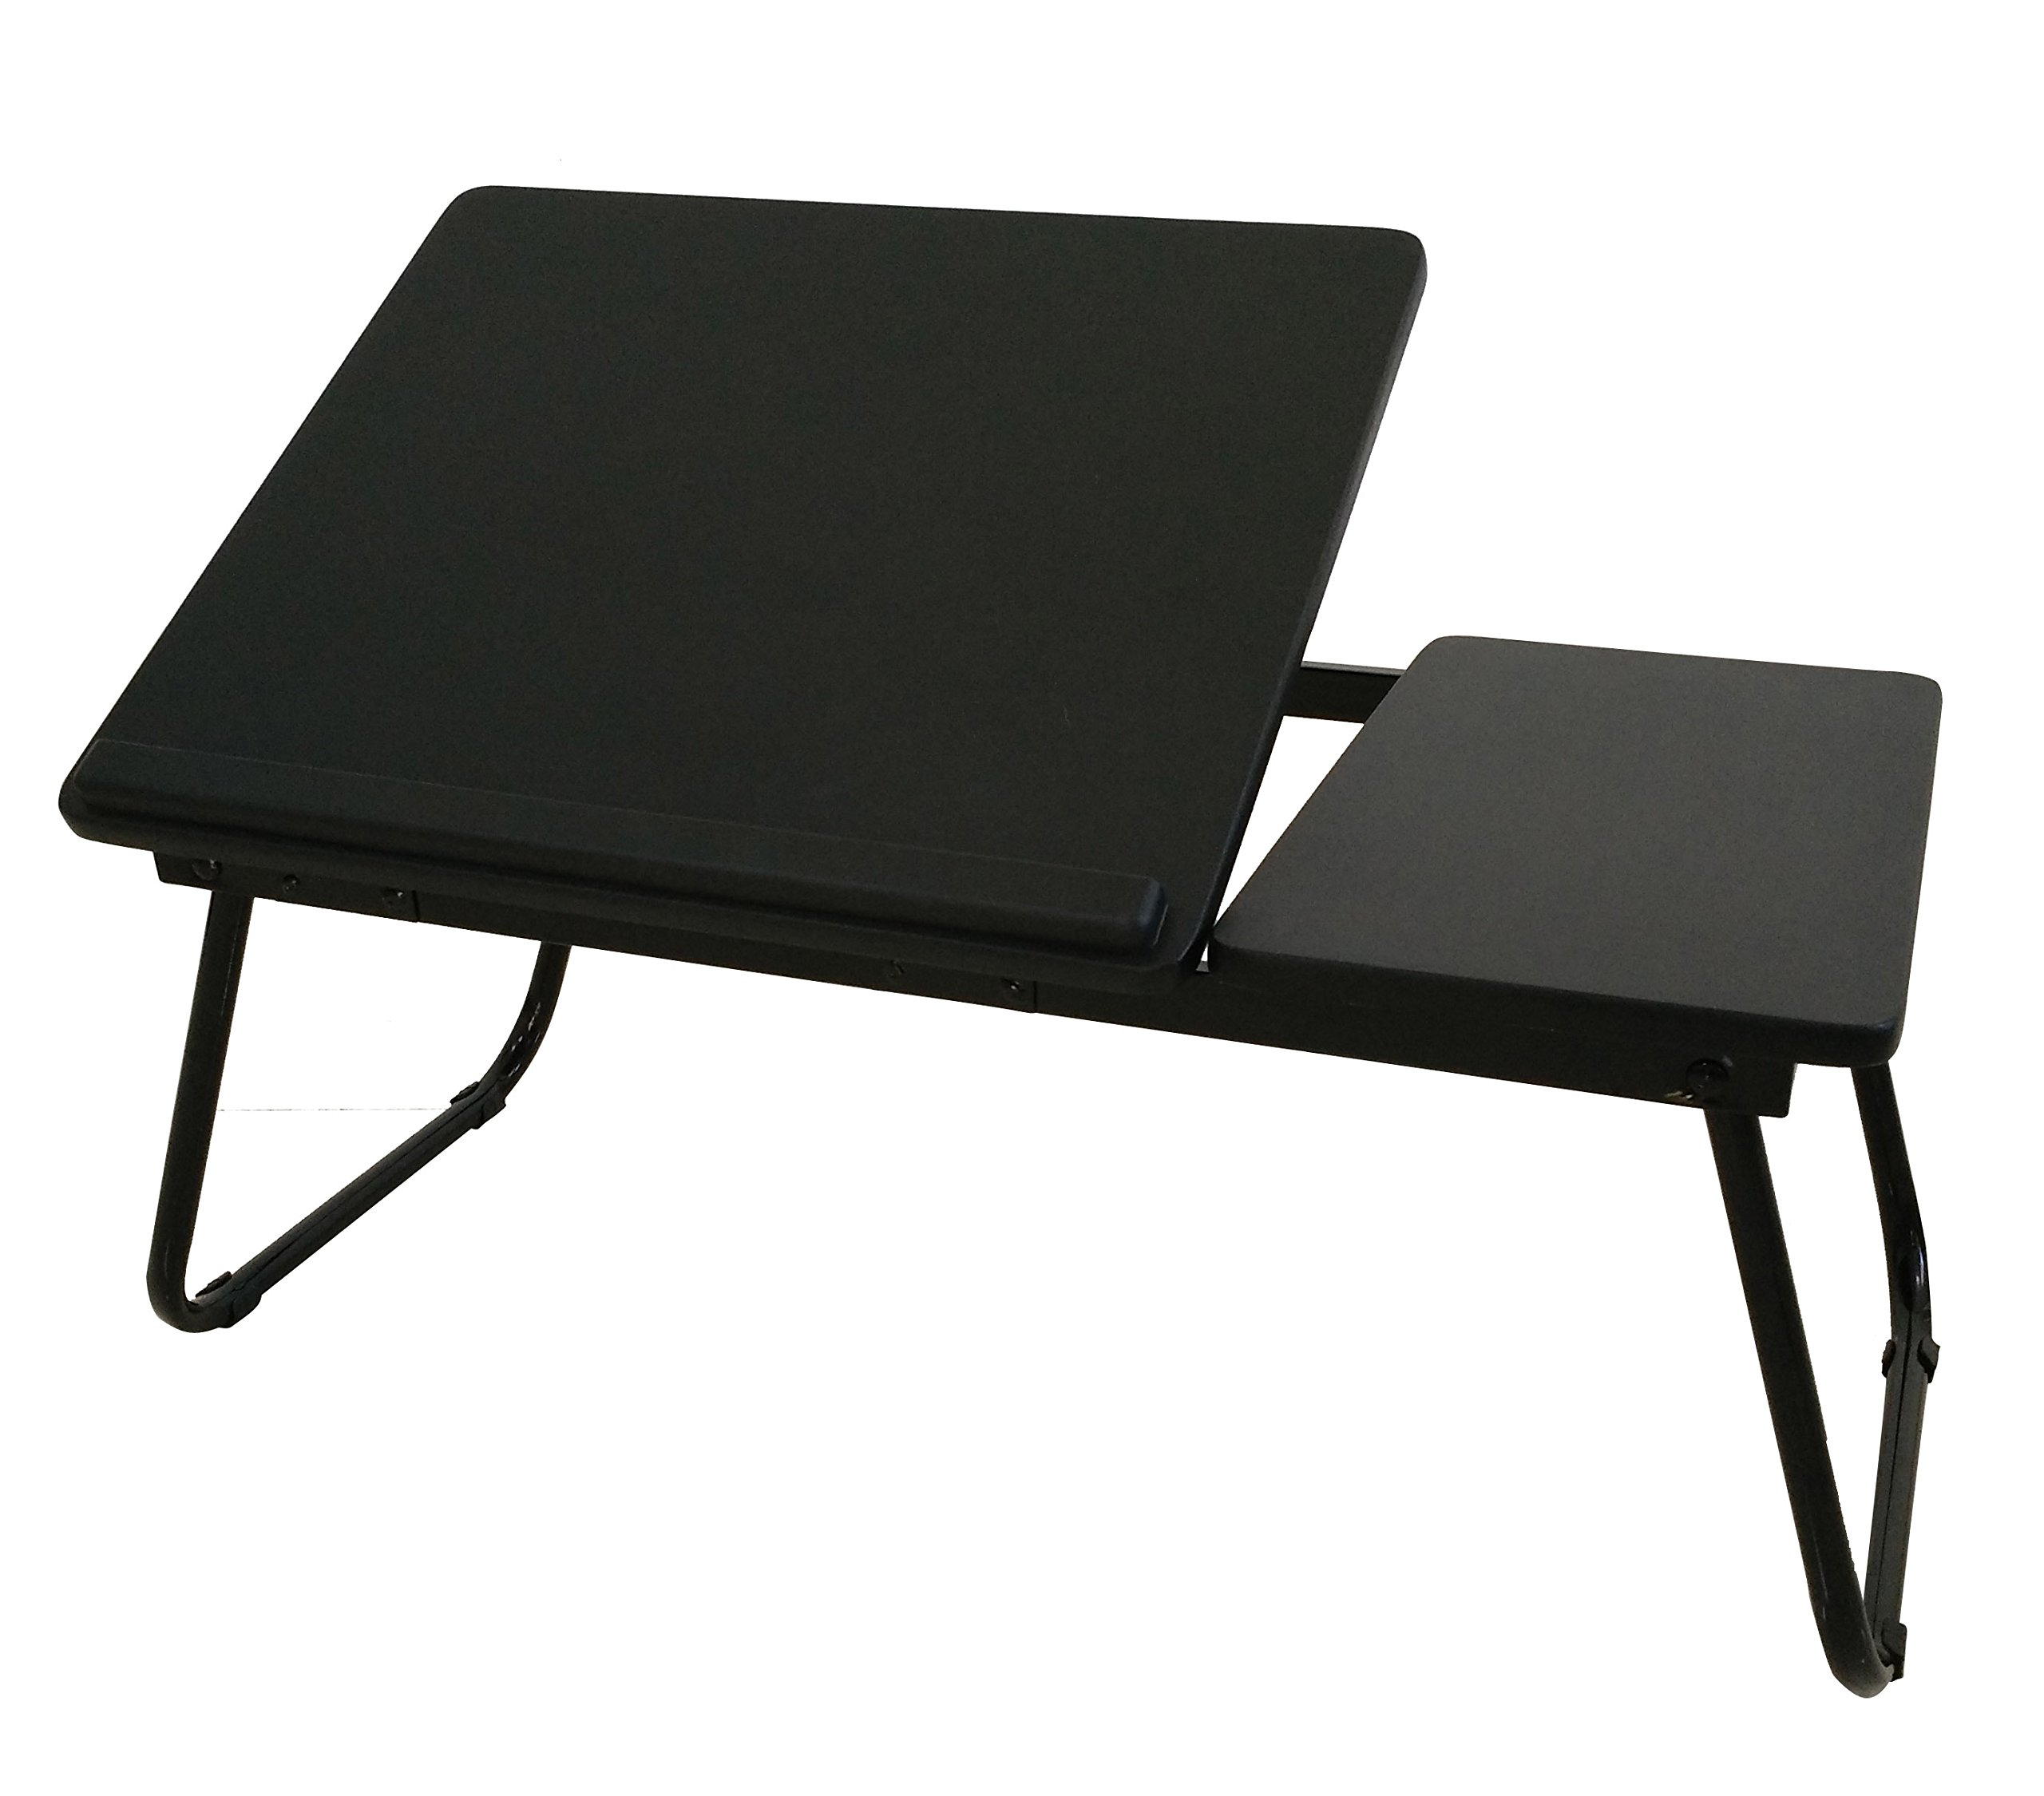 Black Laptop Desk Stand Foldable Large Size Portable Adjustable Tilting Home and Office Lap Desk Bed Tray